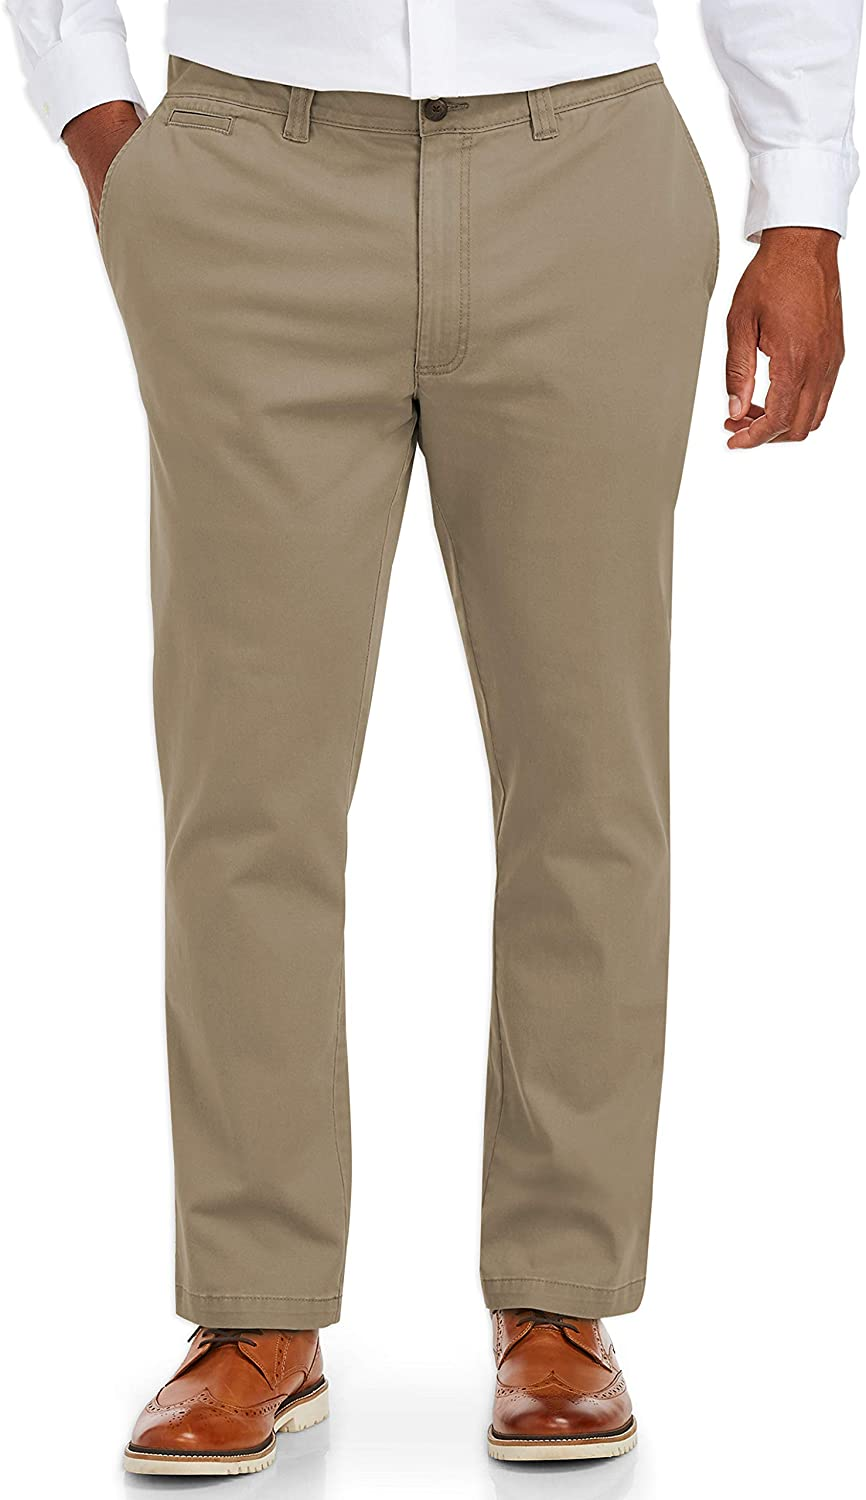 DHgate Essentials Men's Big & Tall Tapered-Fit Broken-In Stretch Chino Pant fit by DXL